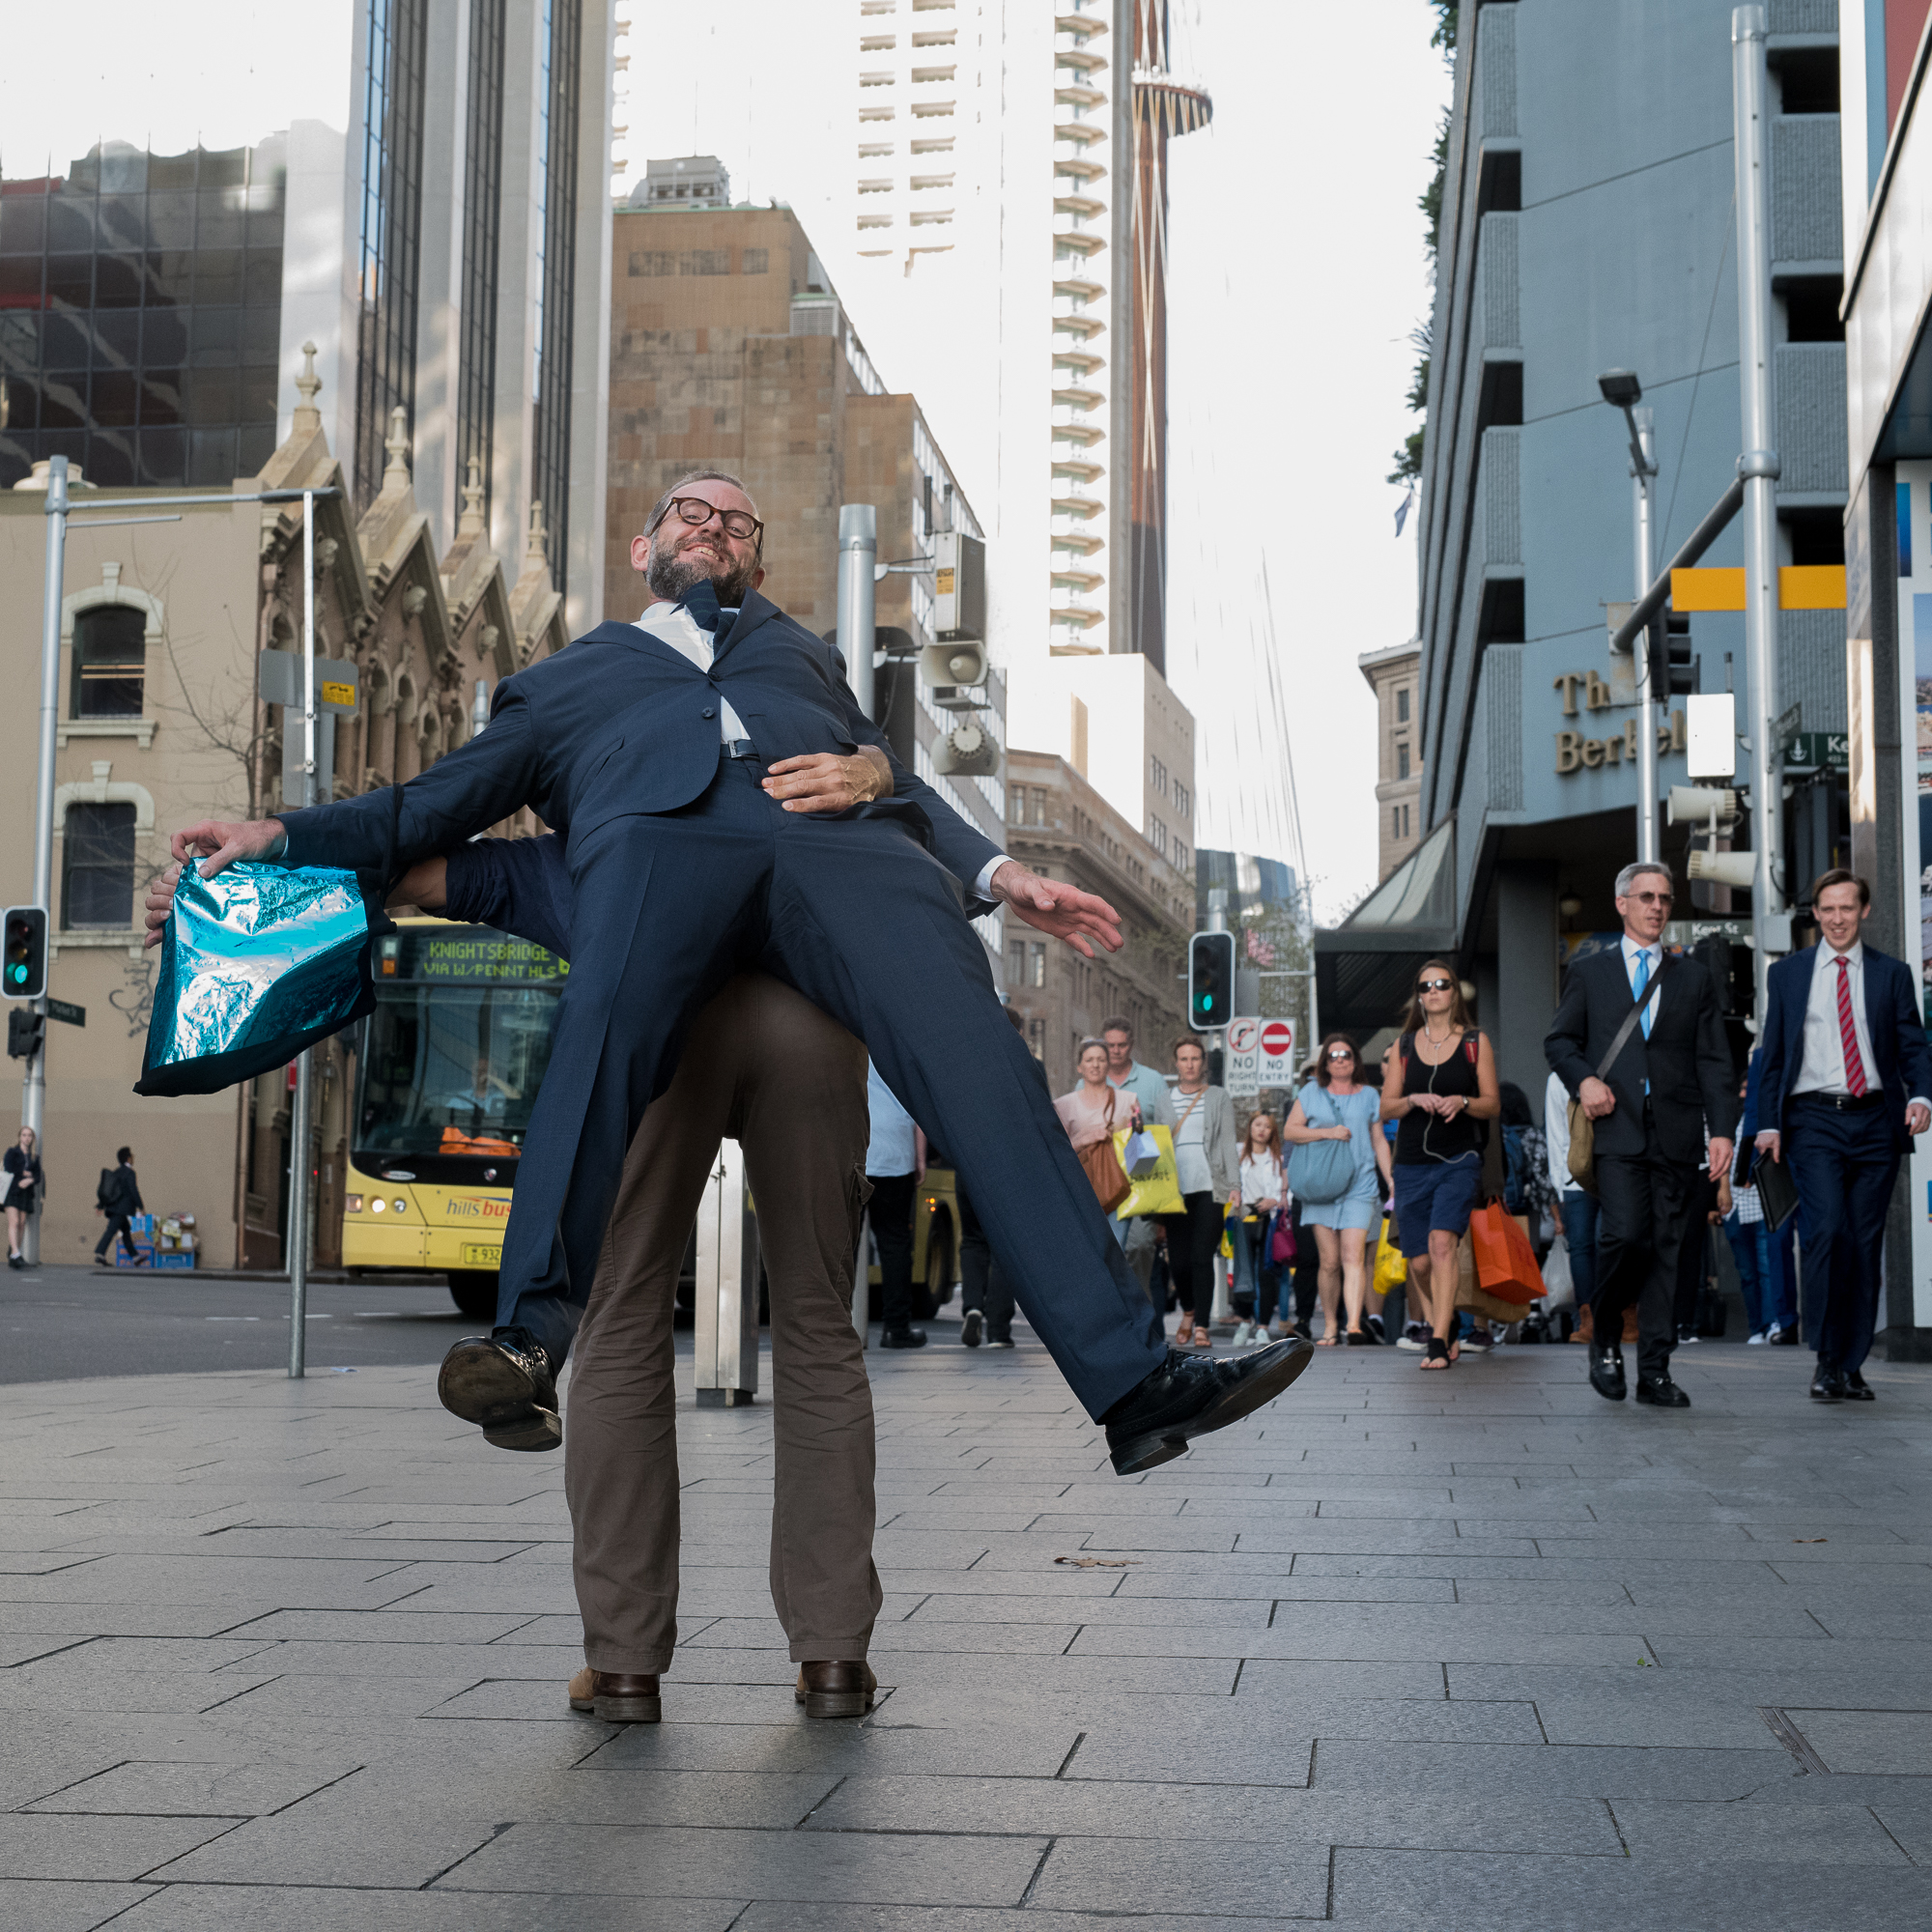 Street Sydney - With two ties